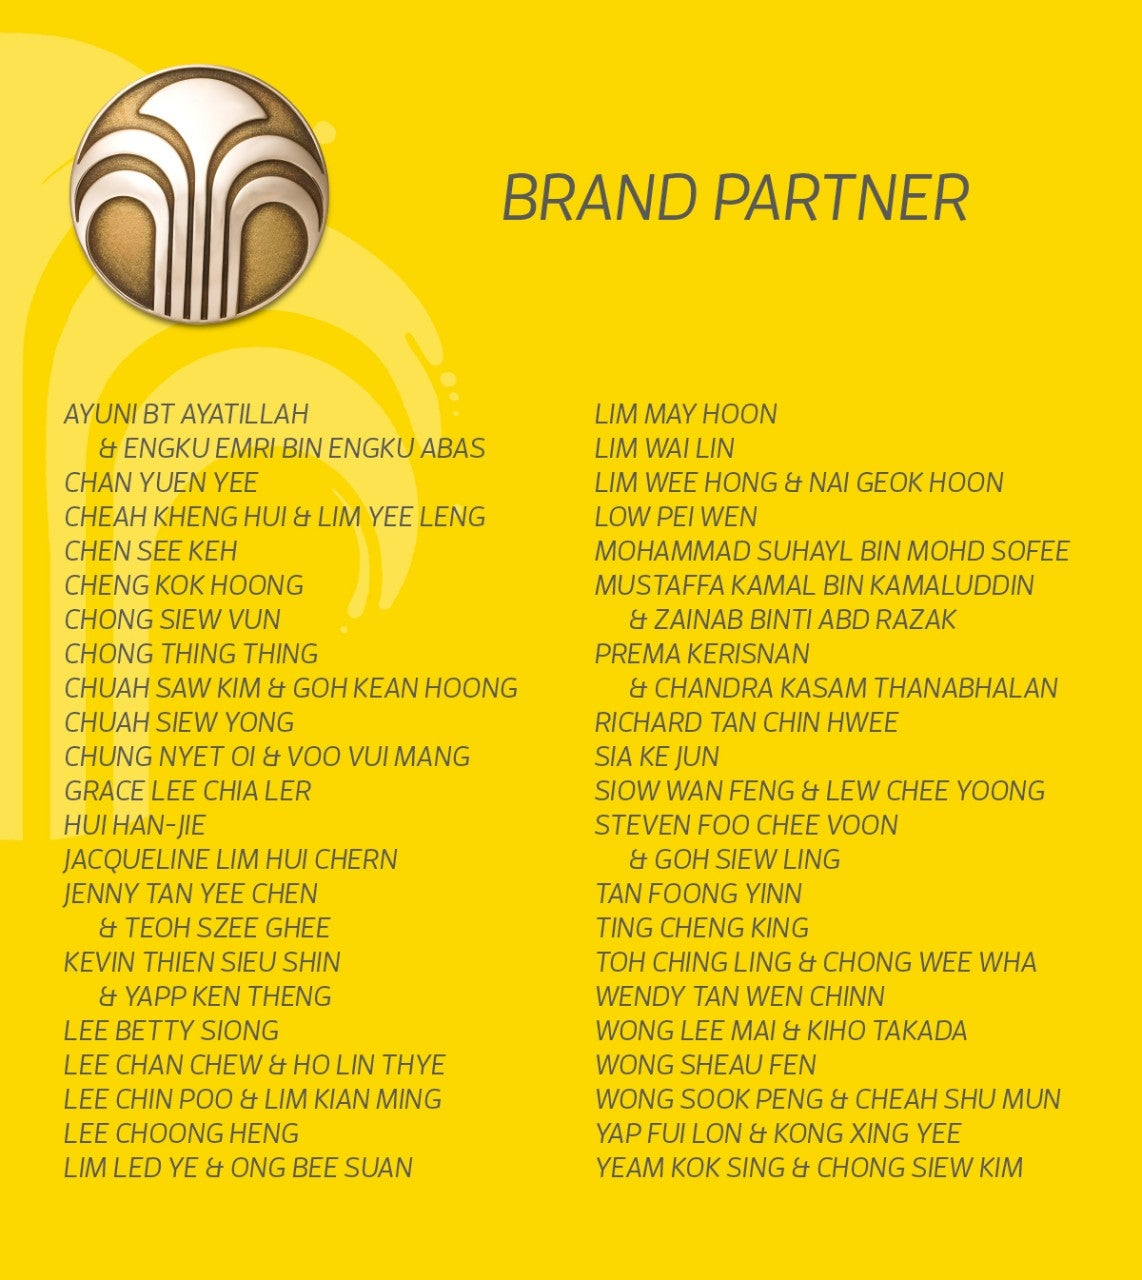 MY-Pin-advacenment_BrandPartner_Feb2020